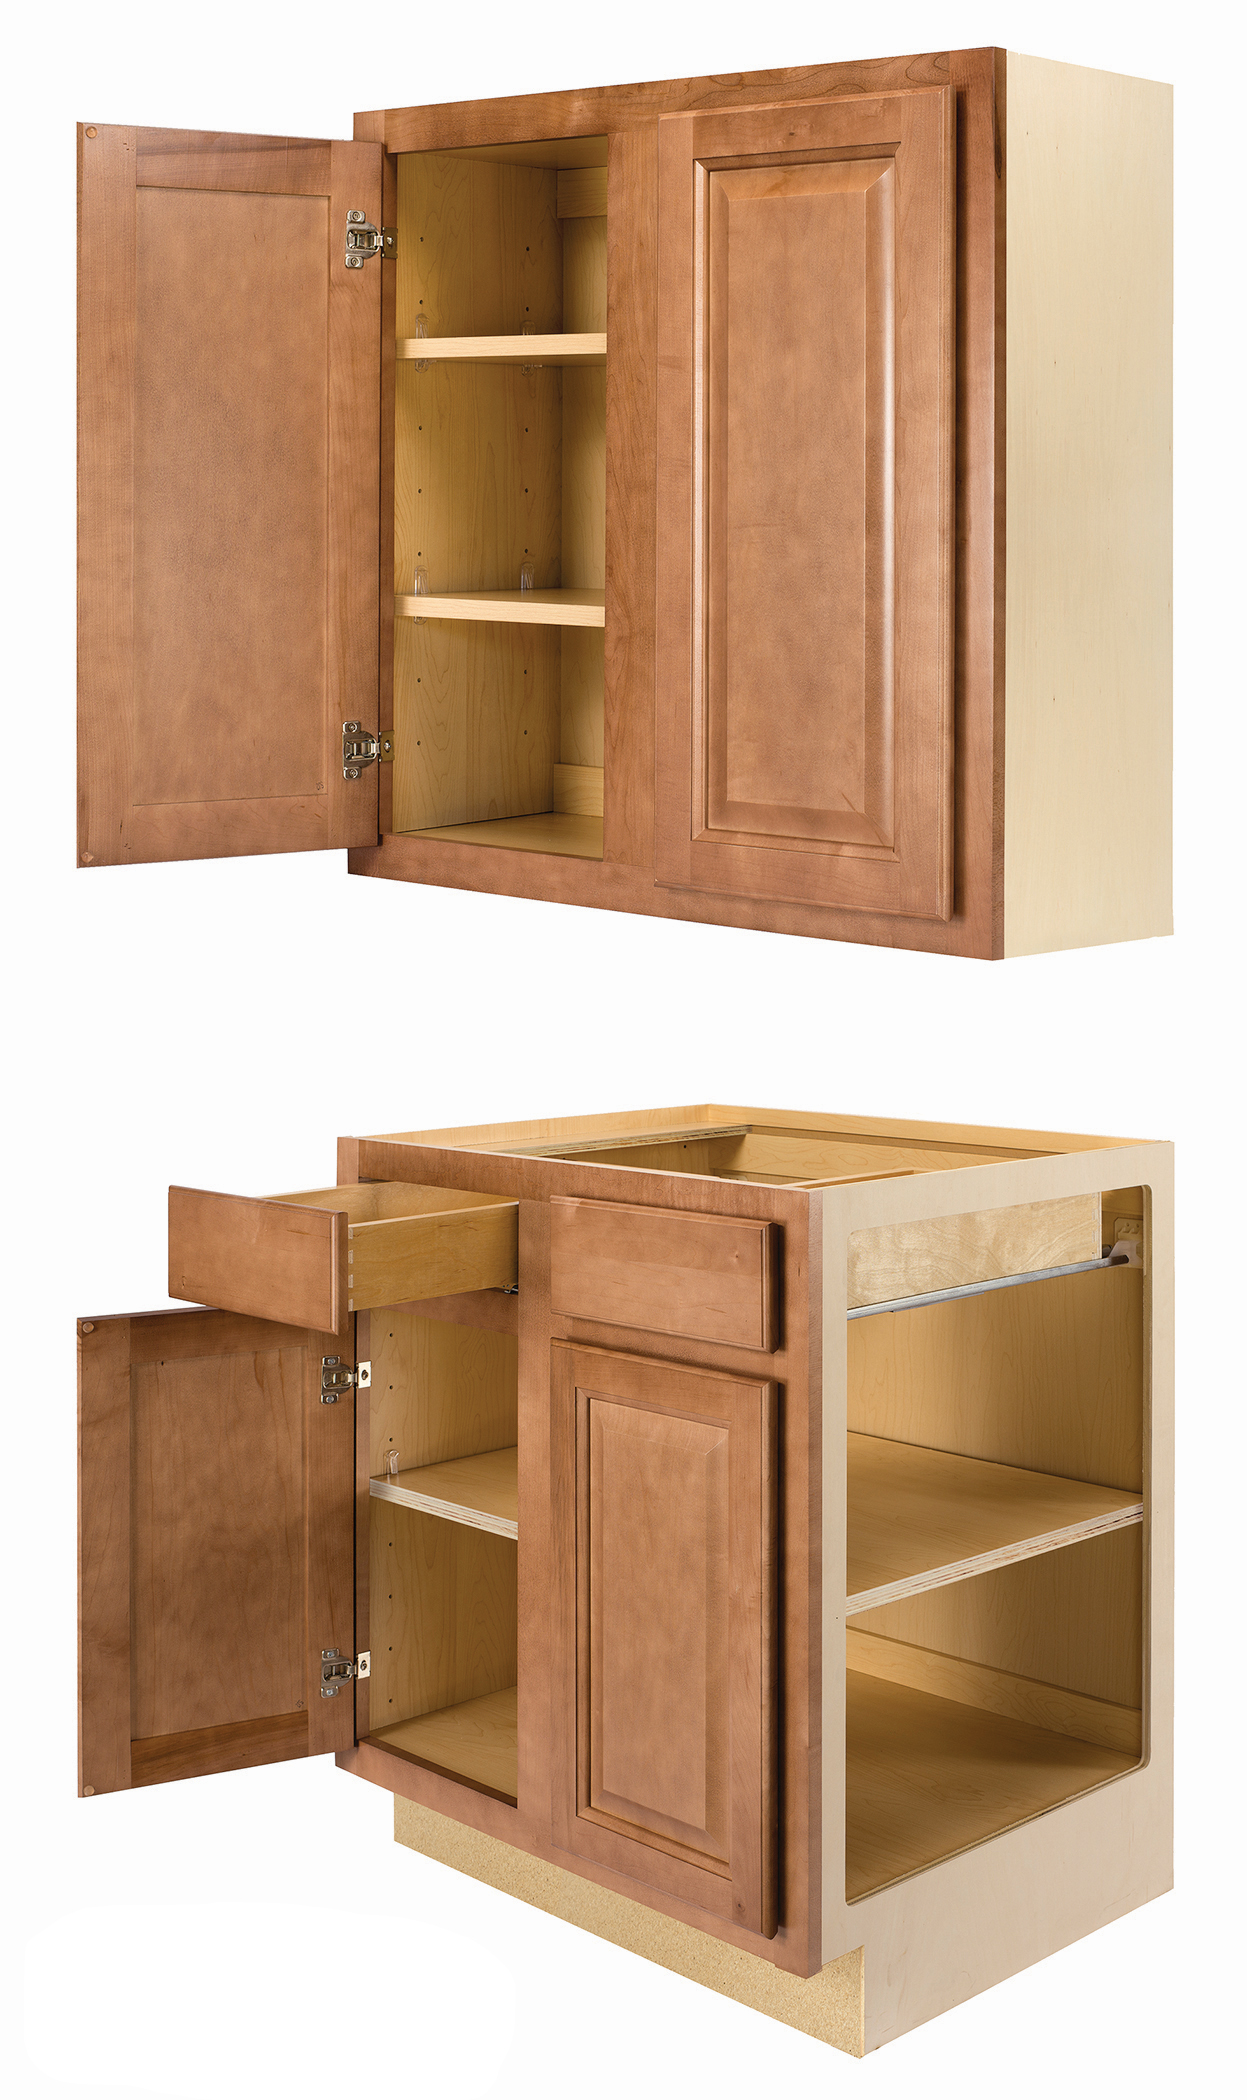 Home Concepts Standard Wall and Base Cabinet Construction information.